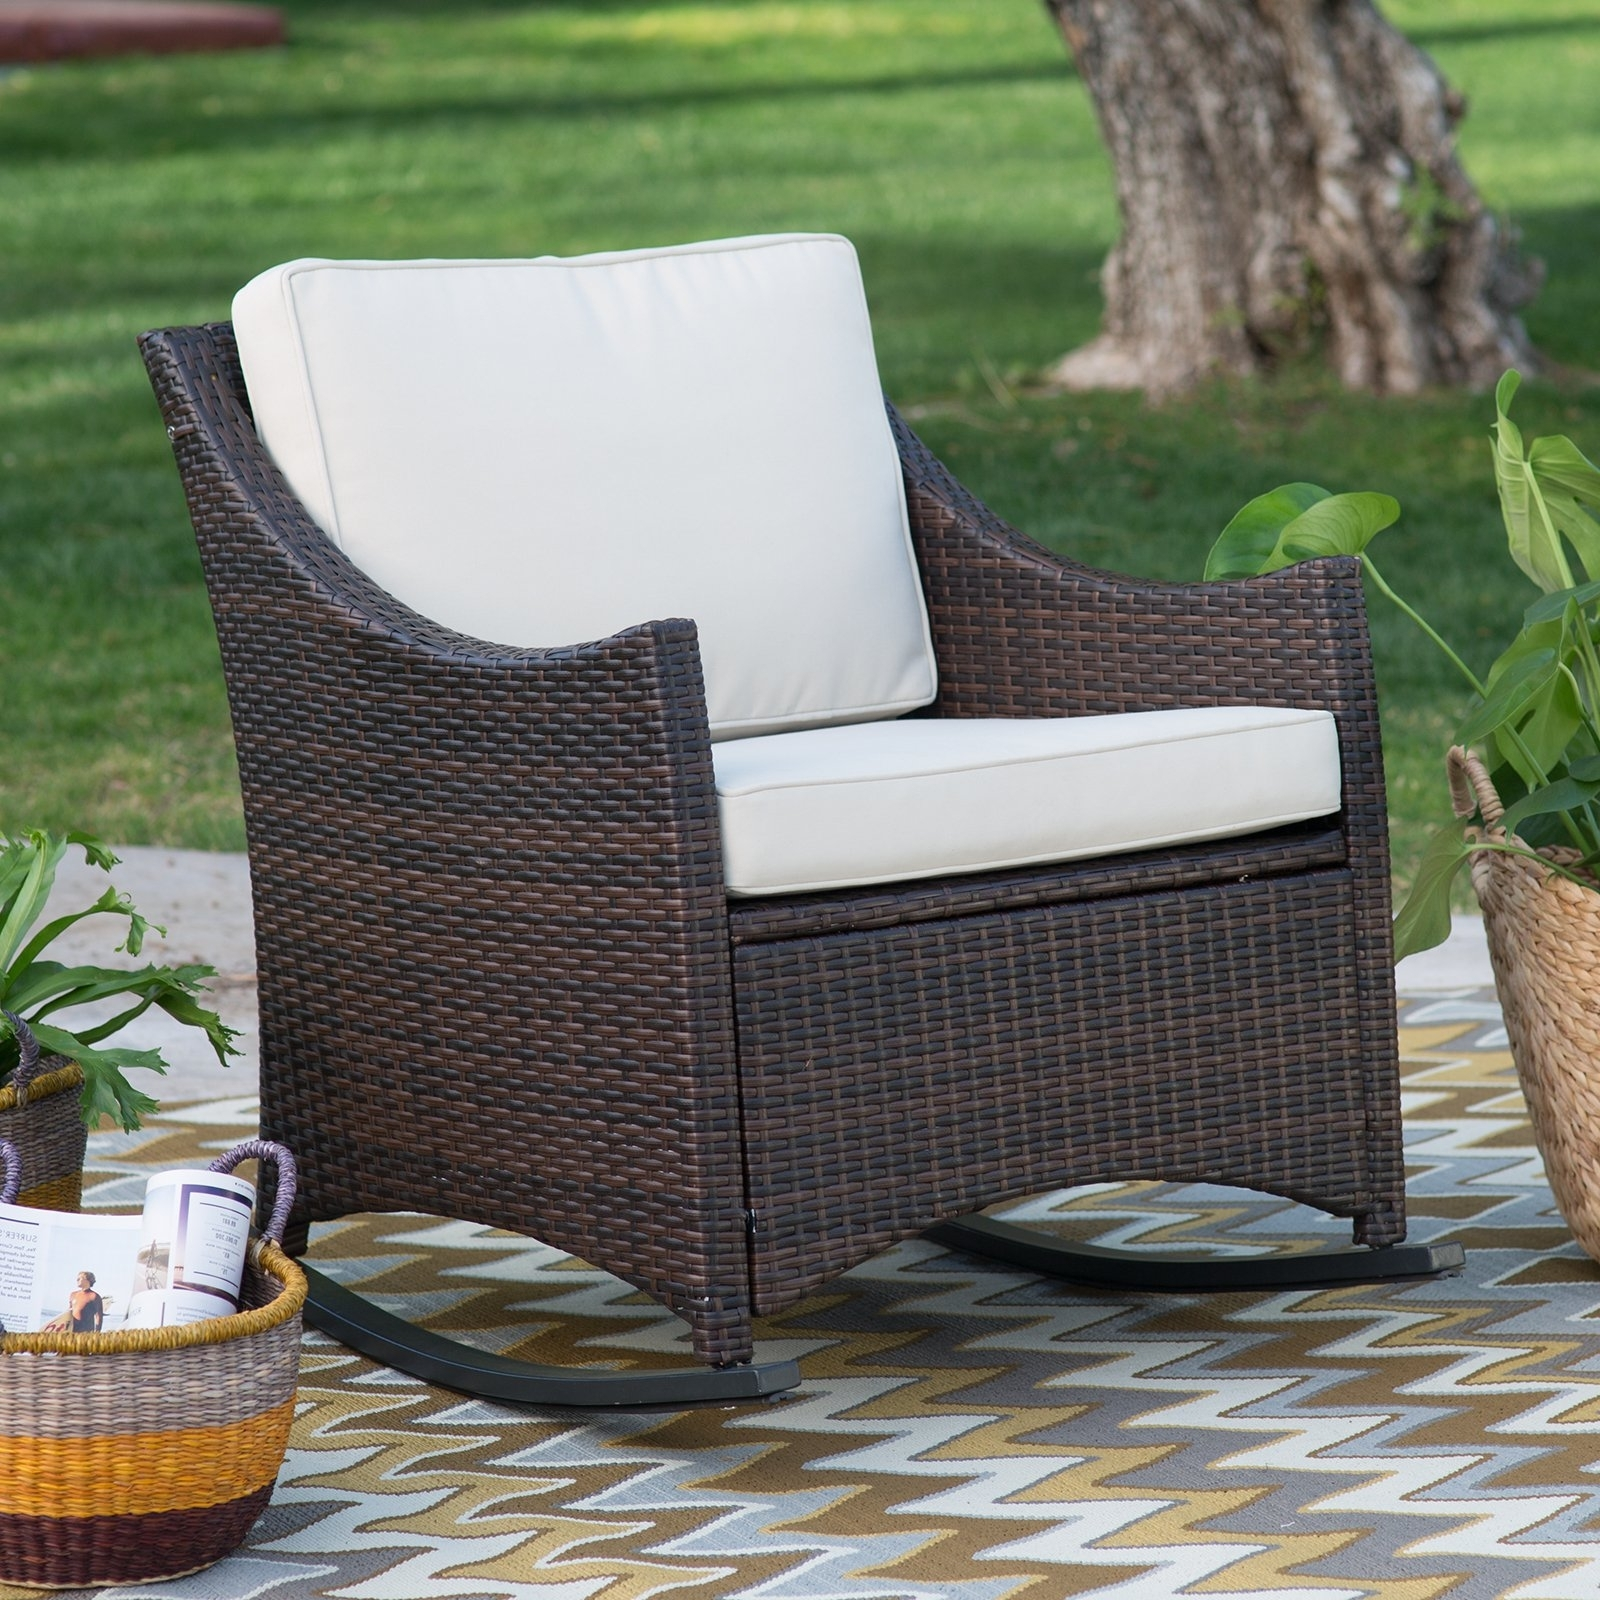 Outdoor Rocking Chairs For Sale Traditional Rocking Chair Regarding White Wicker Rocking Chair For Nursery (View 15 of 15)